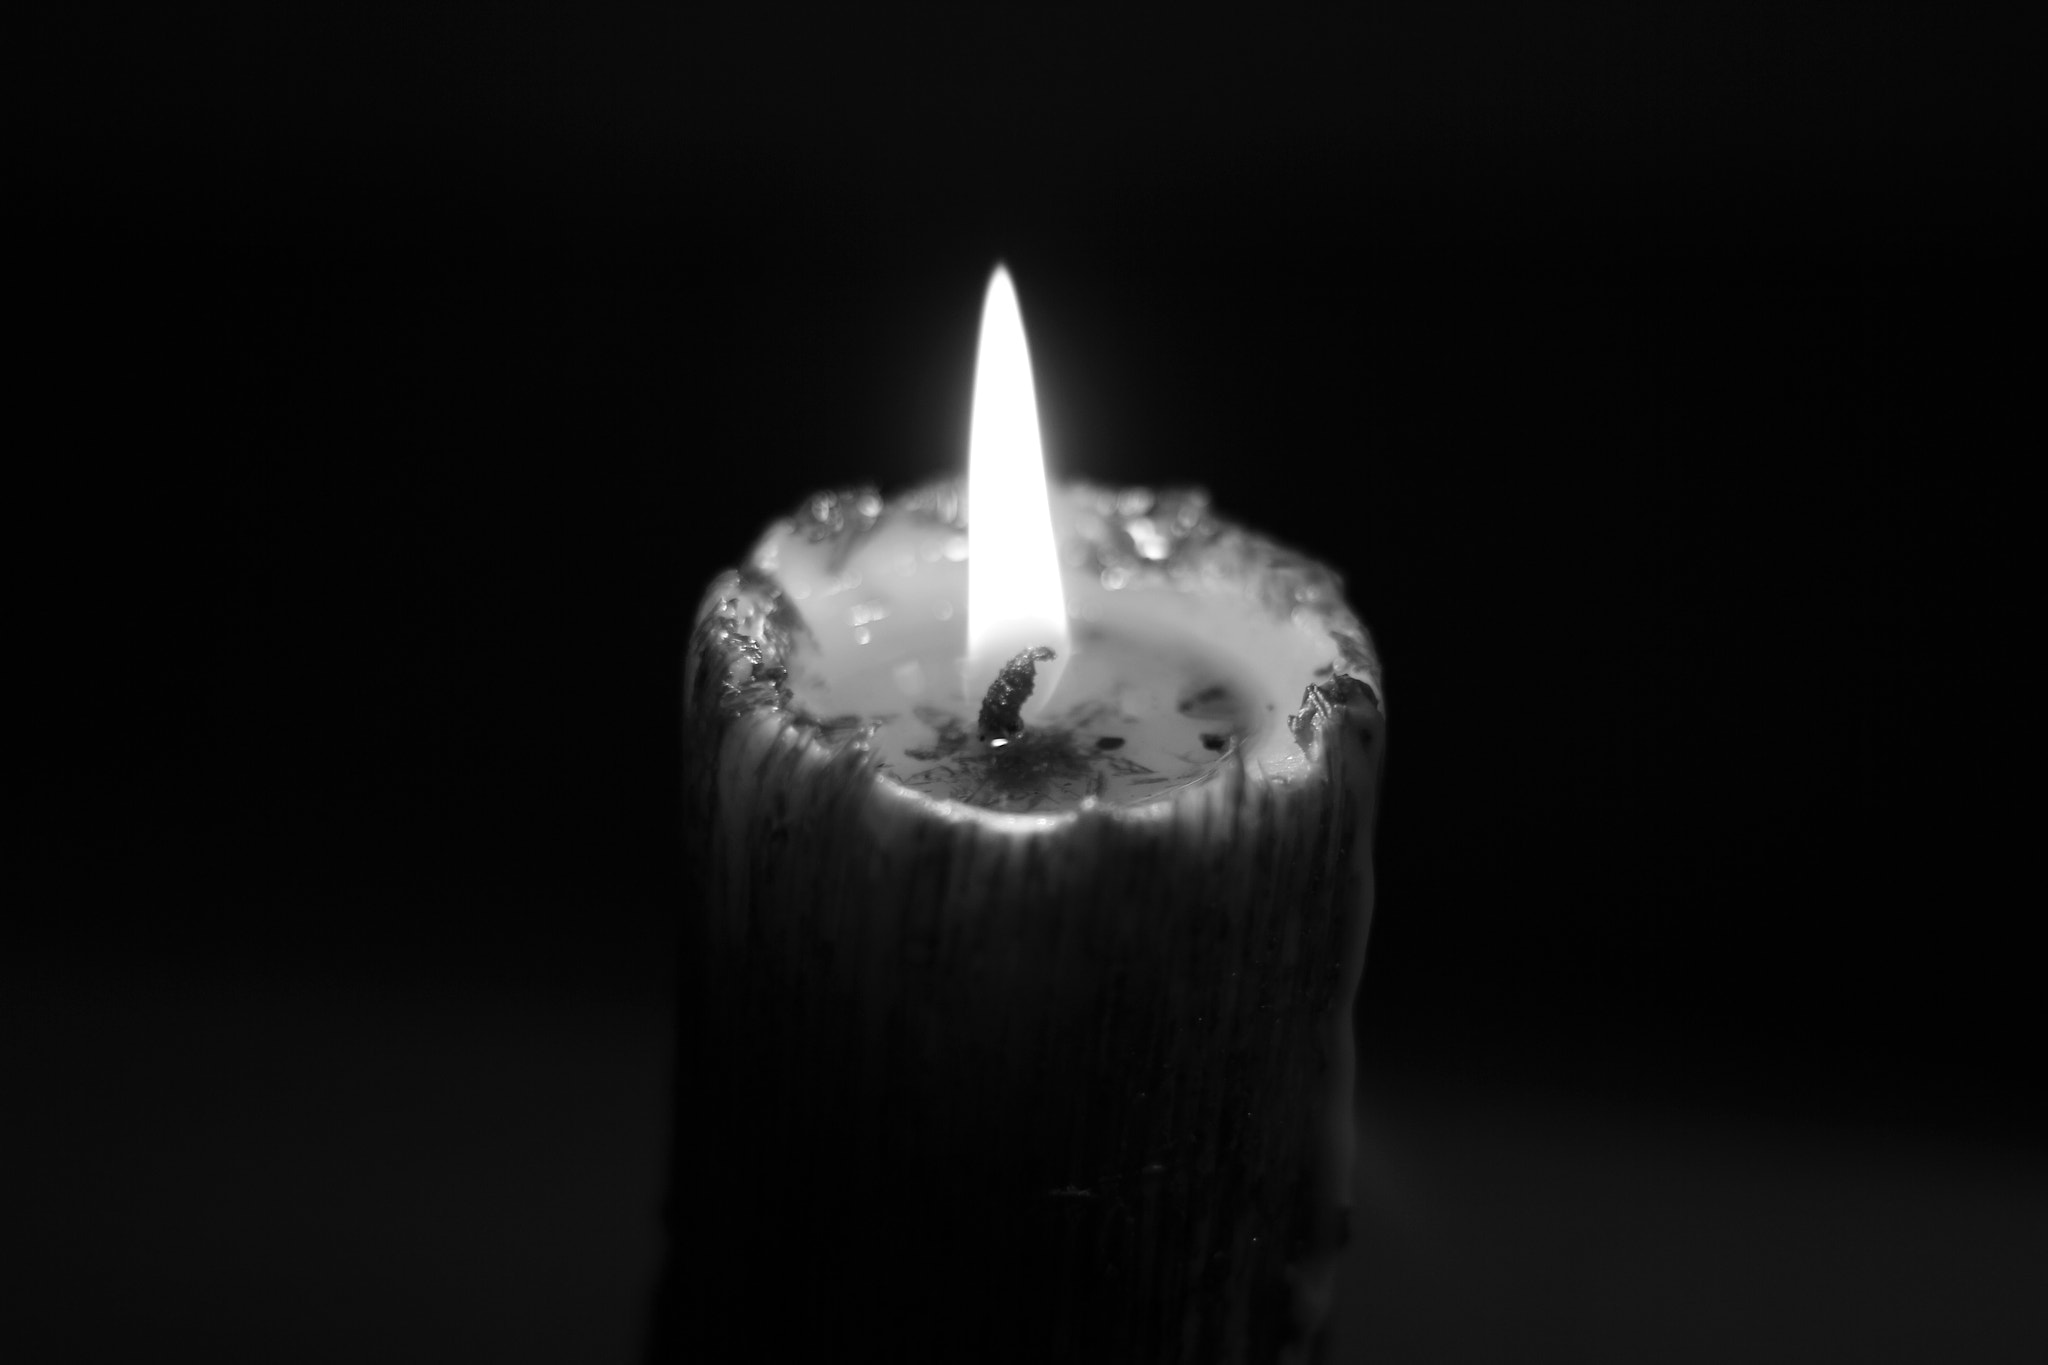 Photograph Candle by Batuhan Ozaltan on 500px